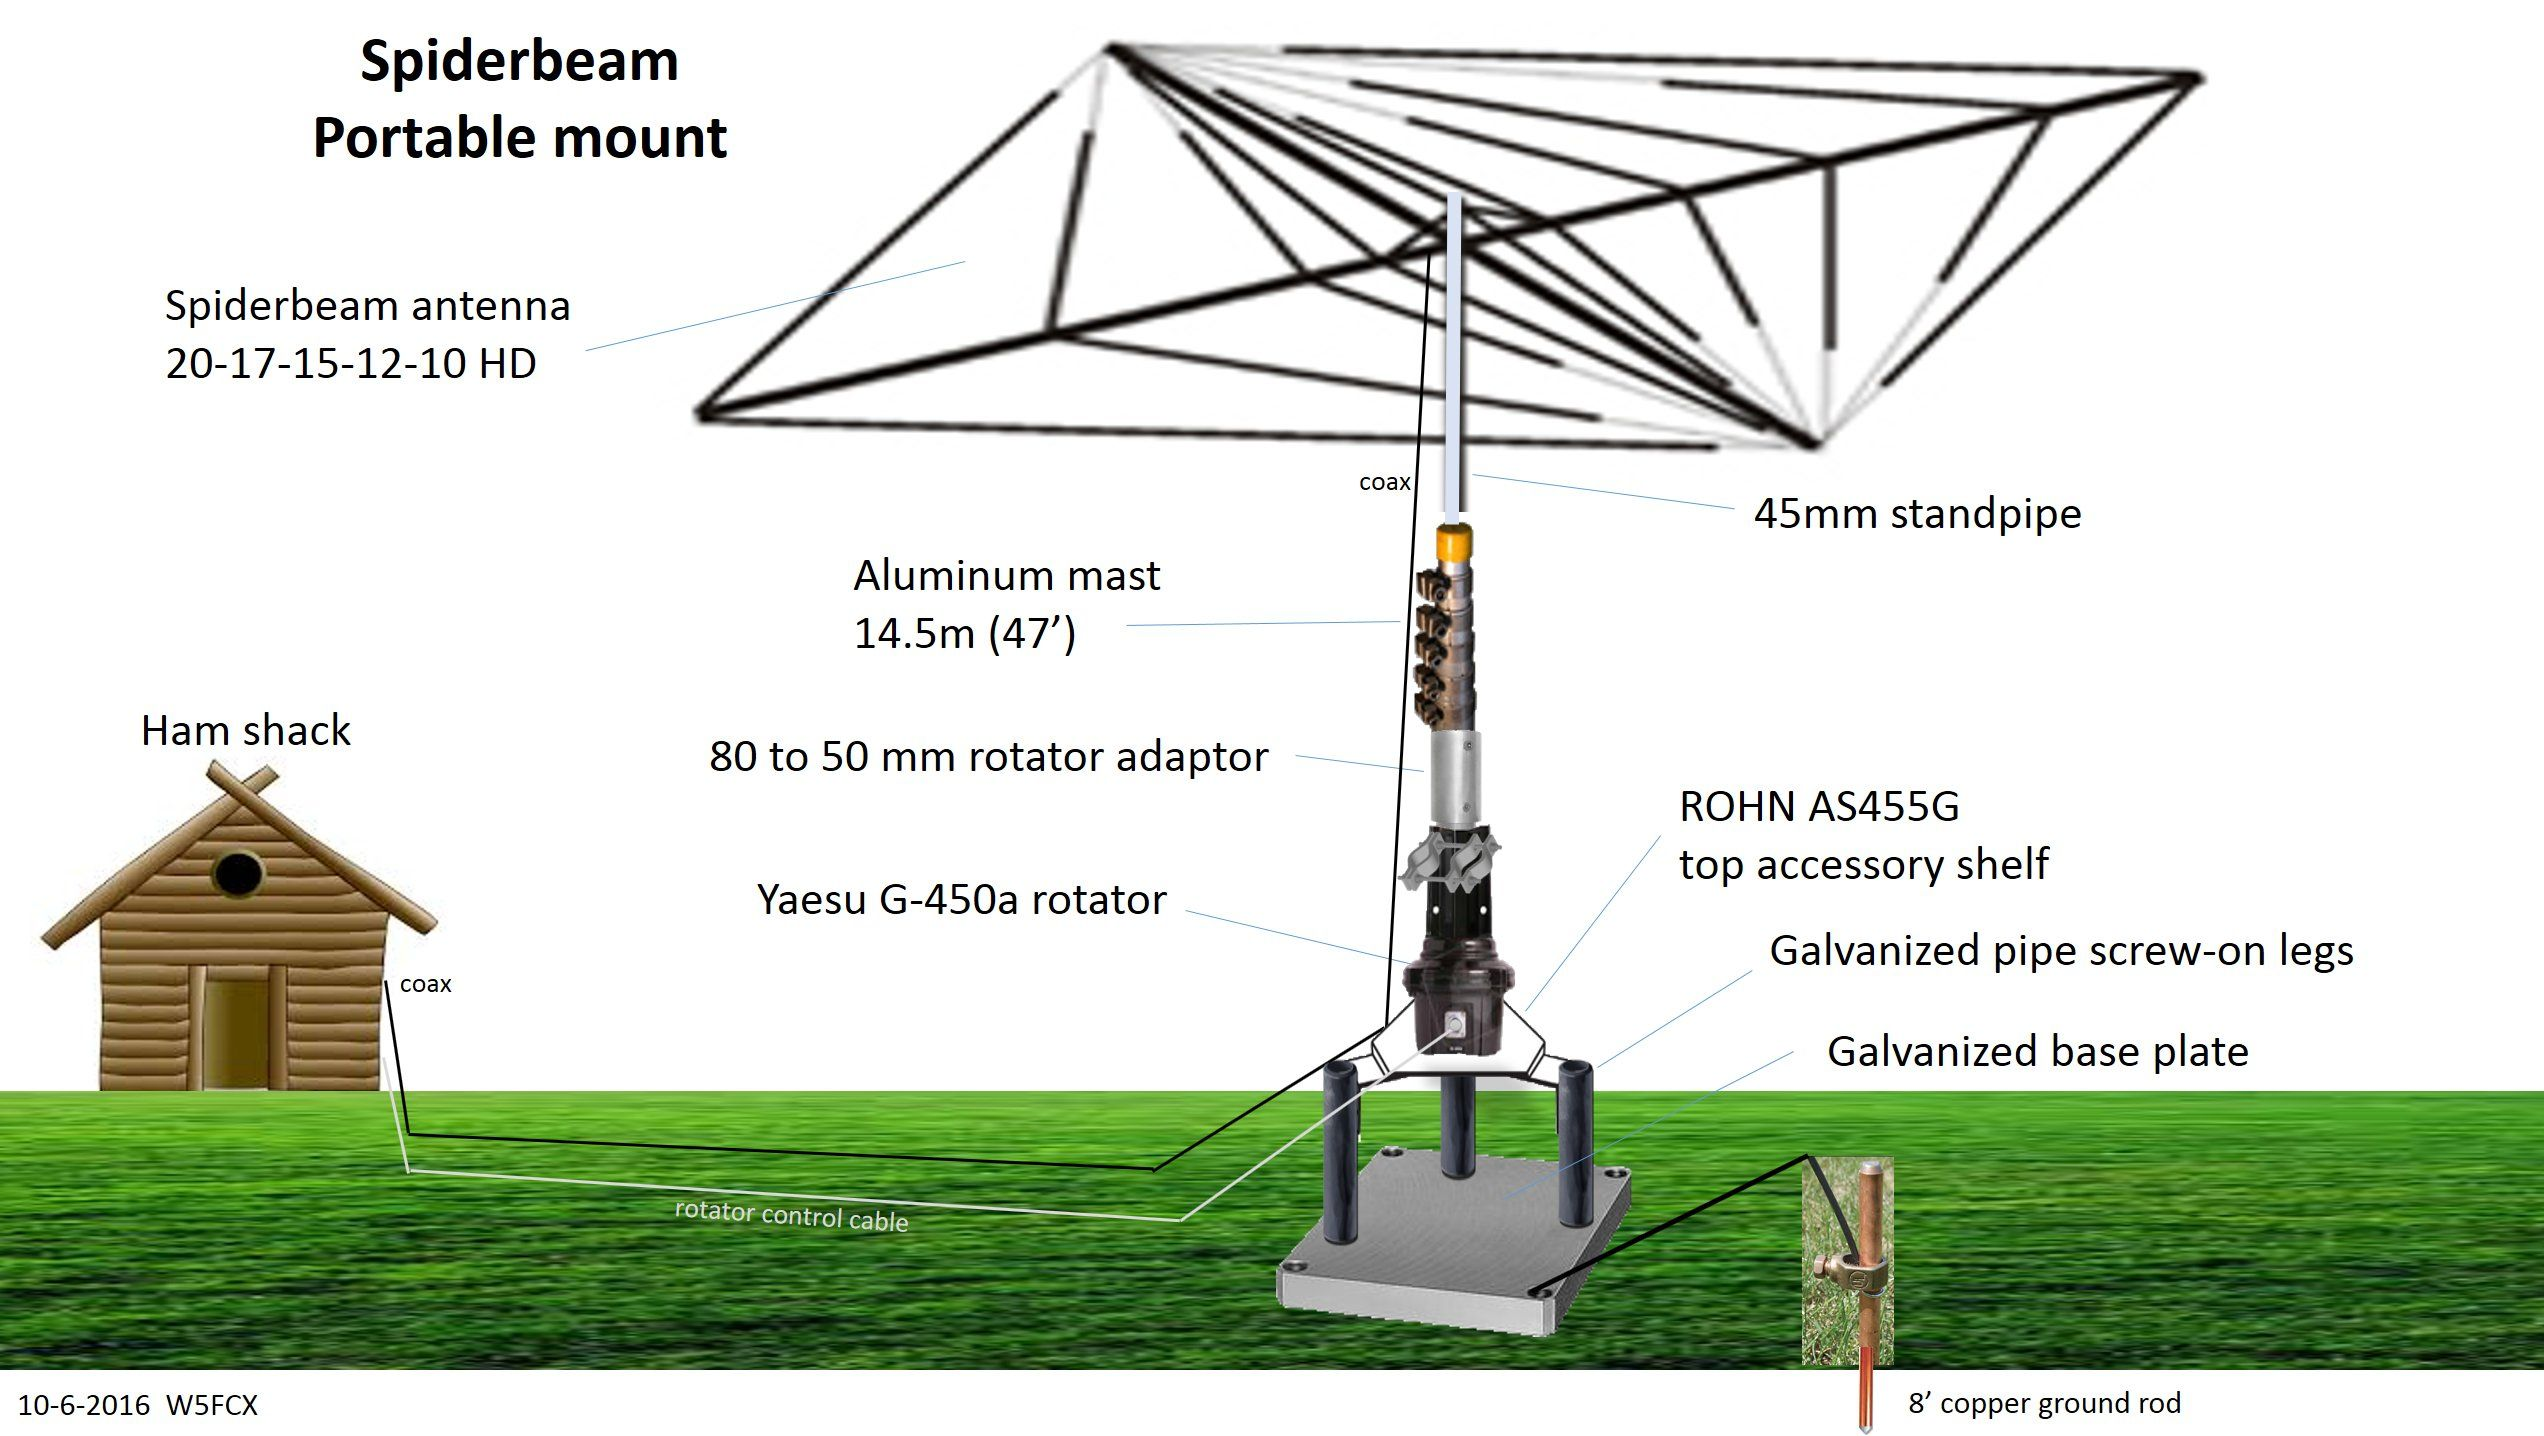 hight resolution of design of a portable 50 spiderbeam yagi antenna made of wire on a 47